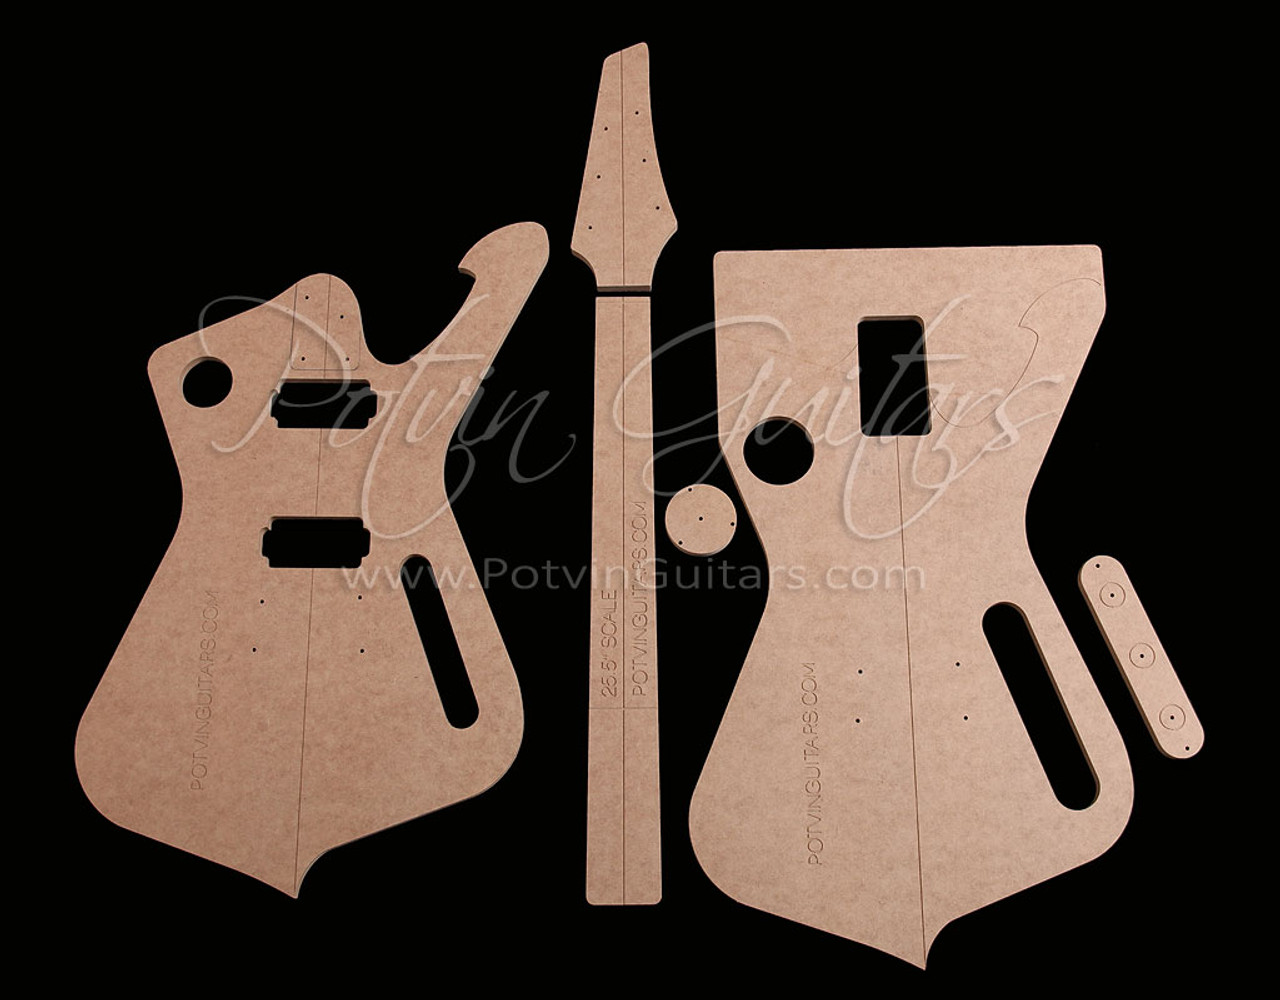 iceman style template set potvin guitars